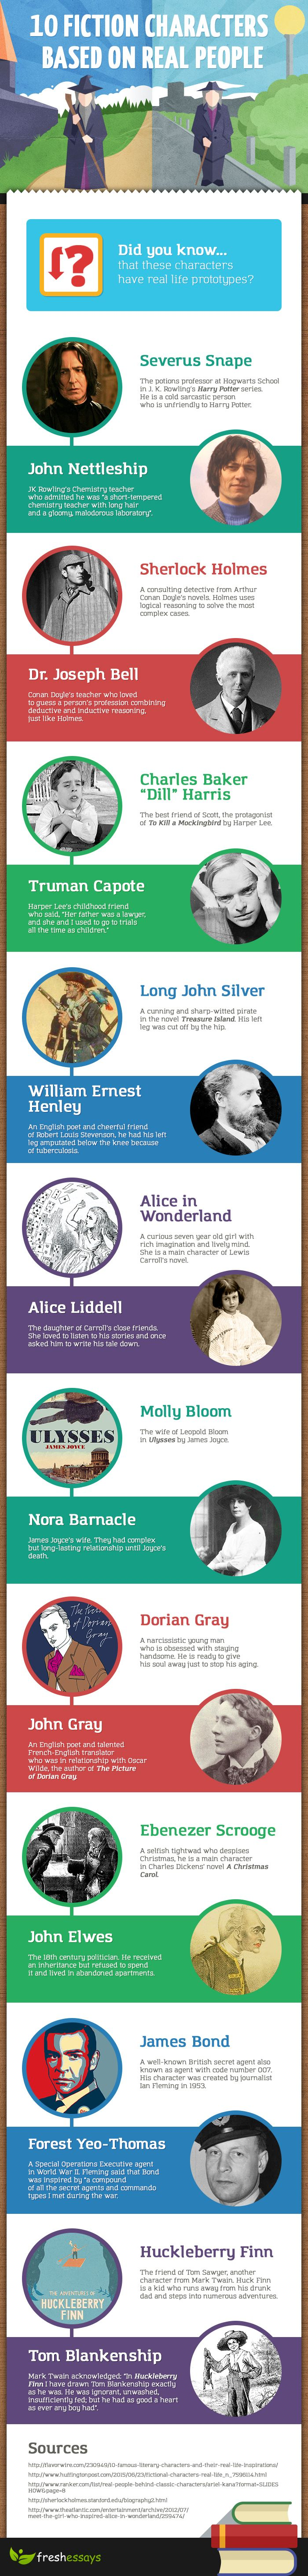 10 Fiction Characters Based on Real People #infographic #Fiction #Books